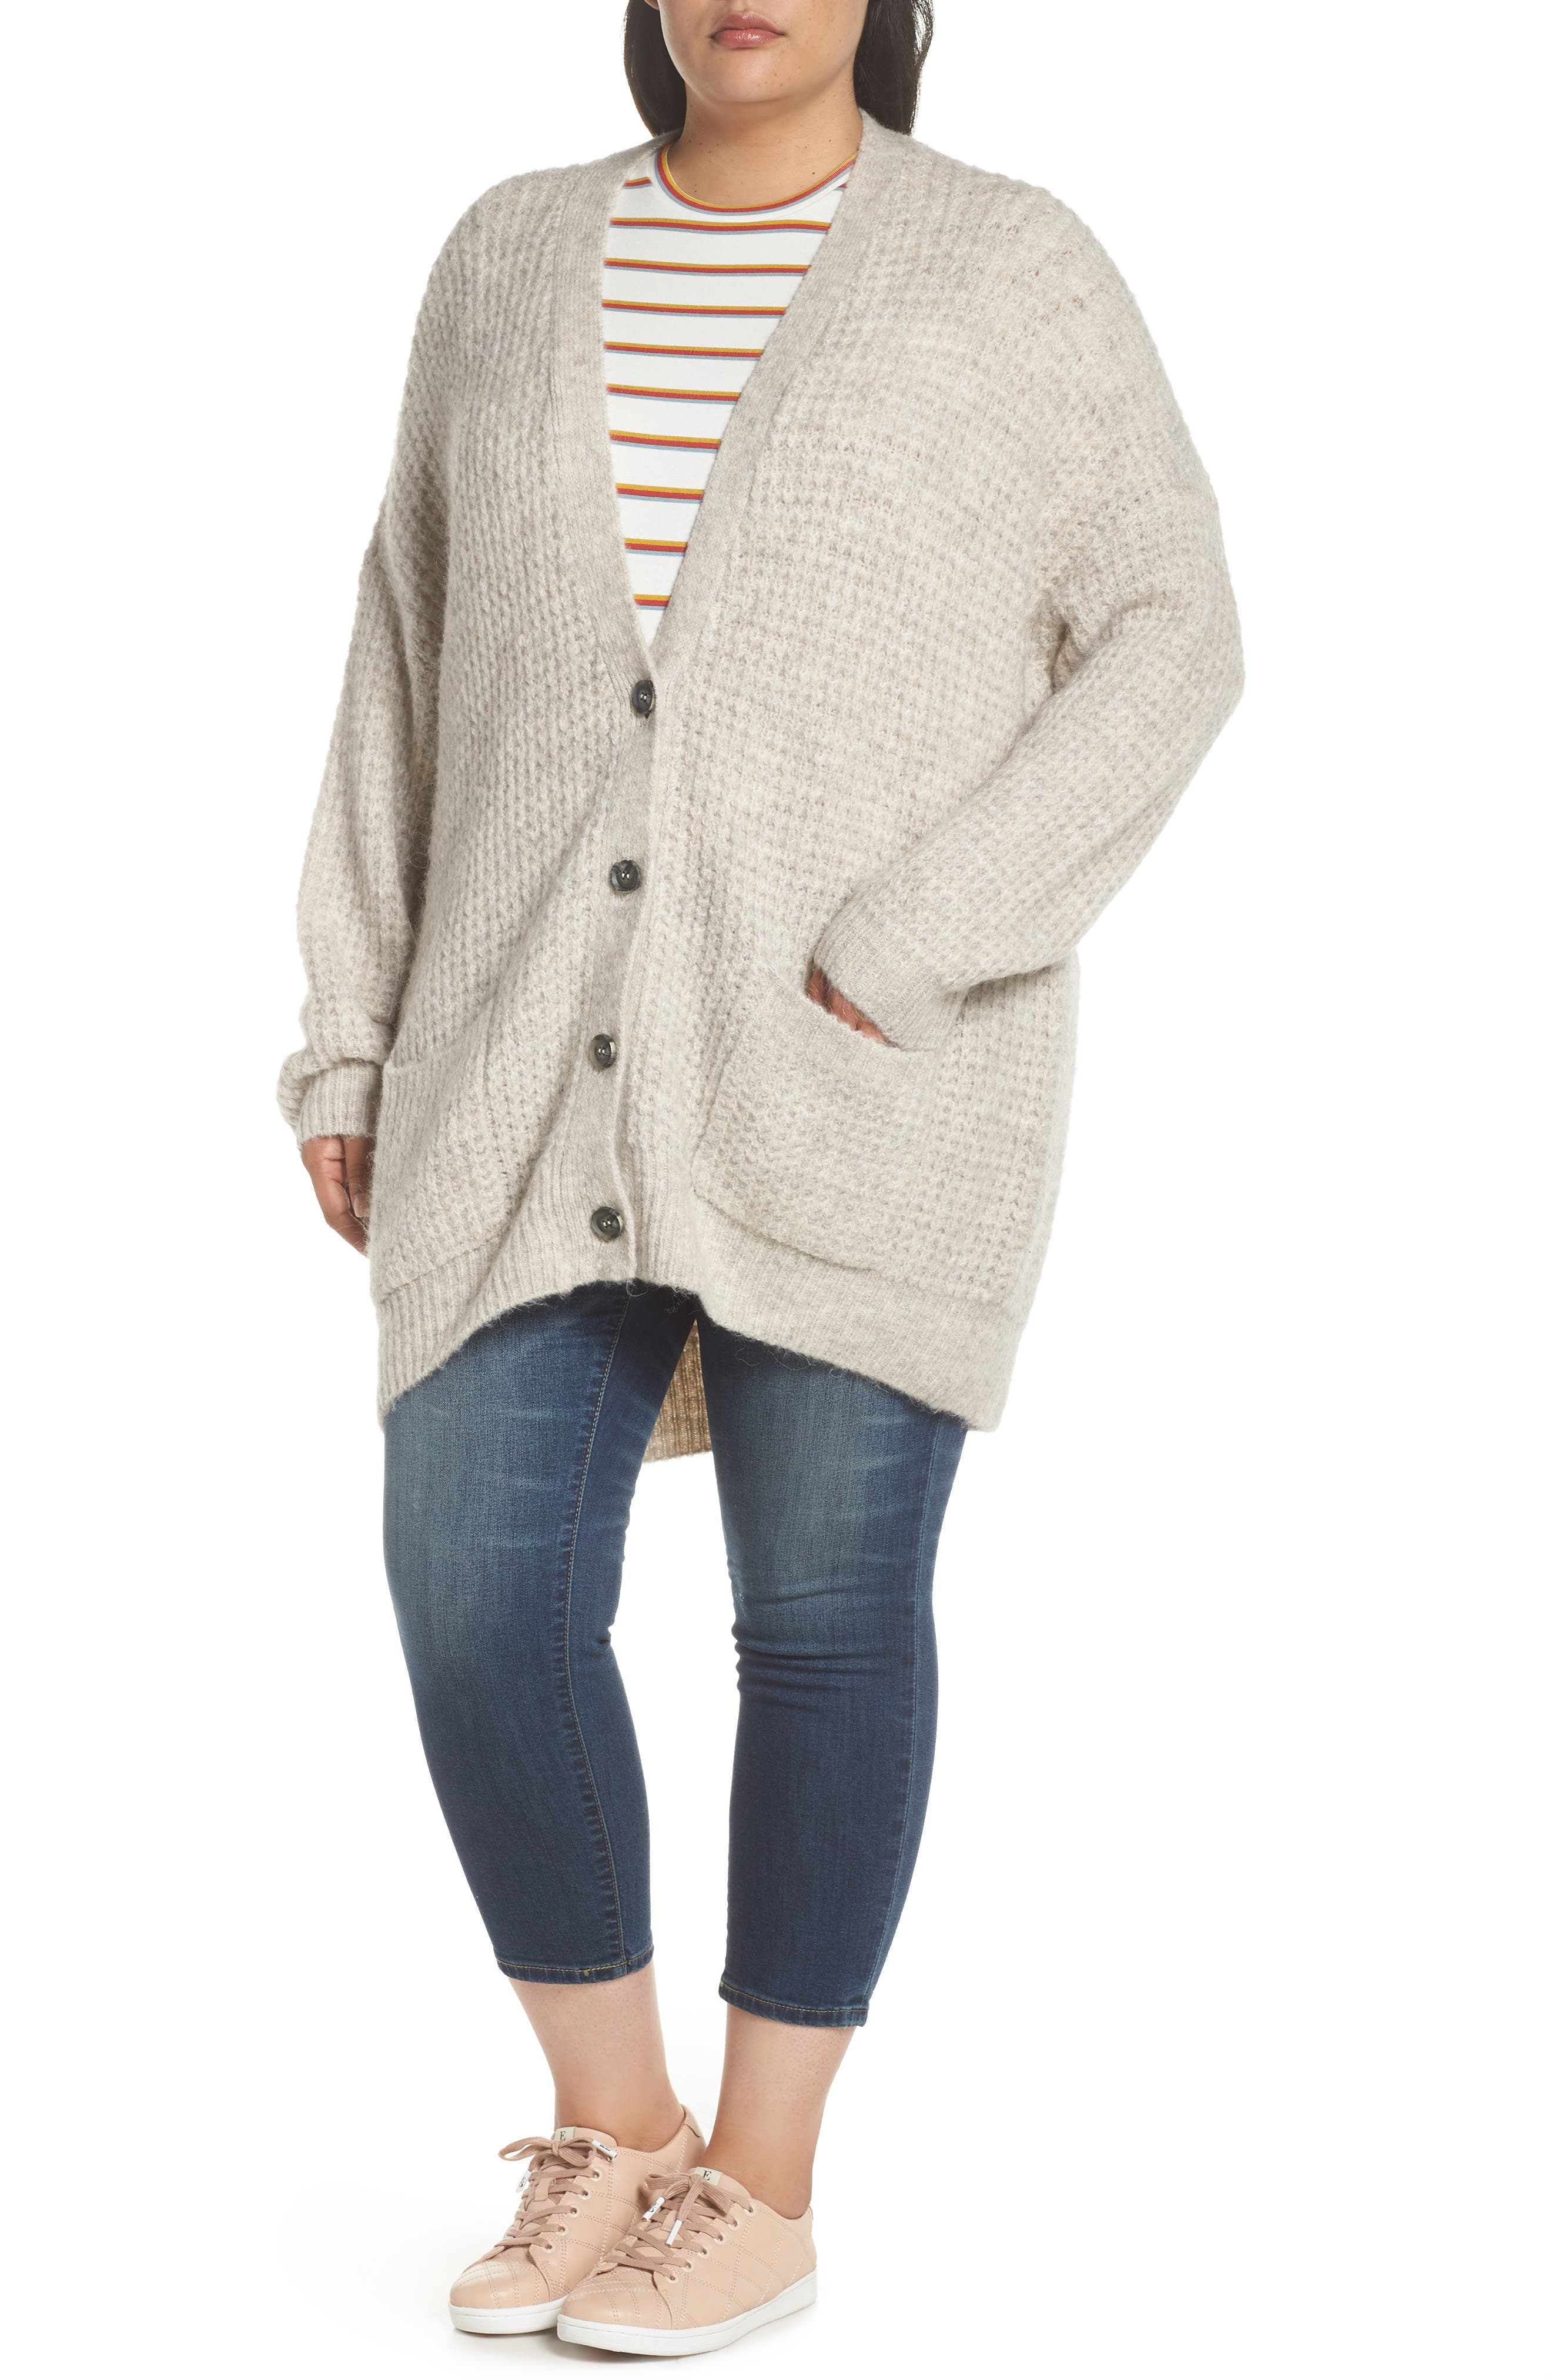 Oversized Waffle Stitch Cardigan,                             Alternate thumbnail 10, color,                             BEIGE BIRCH